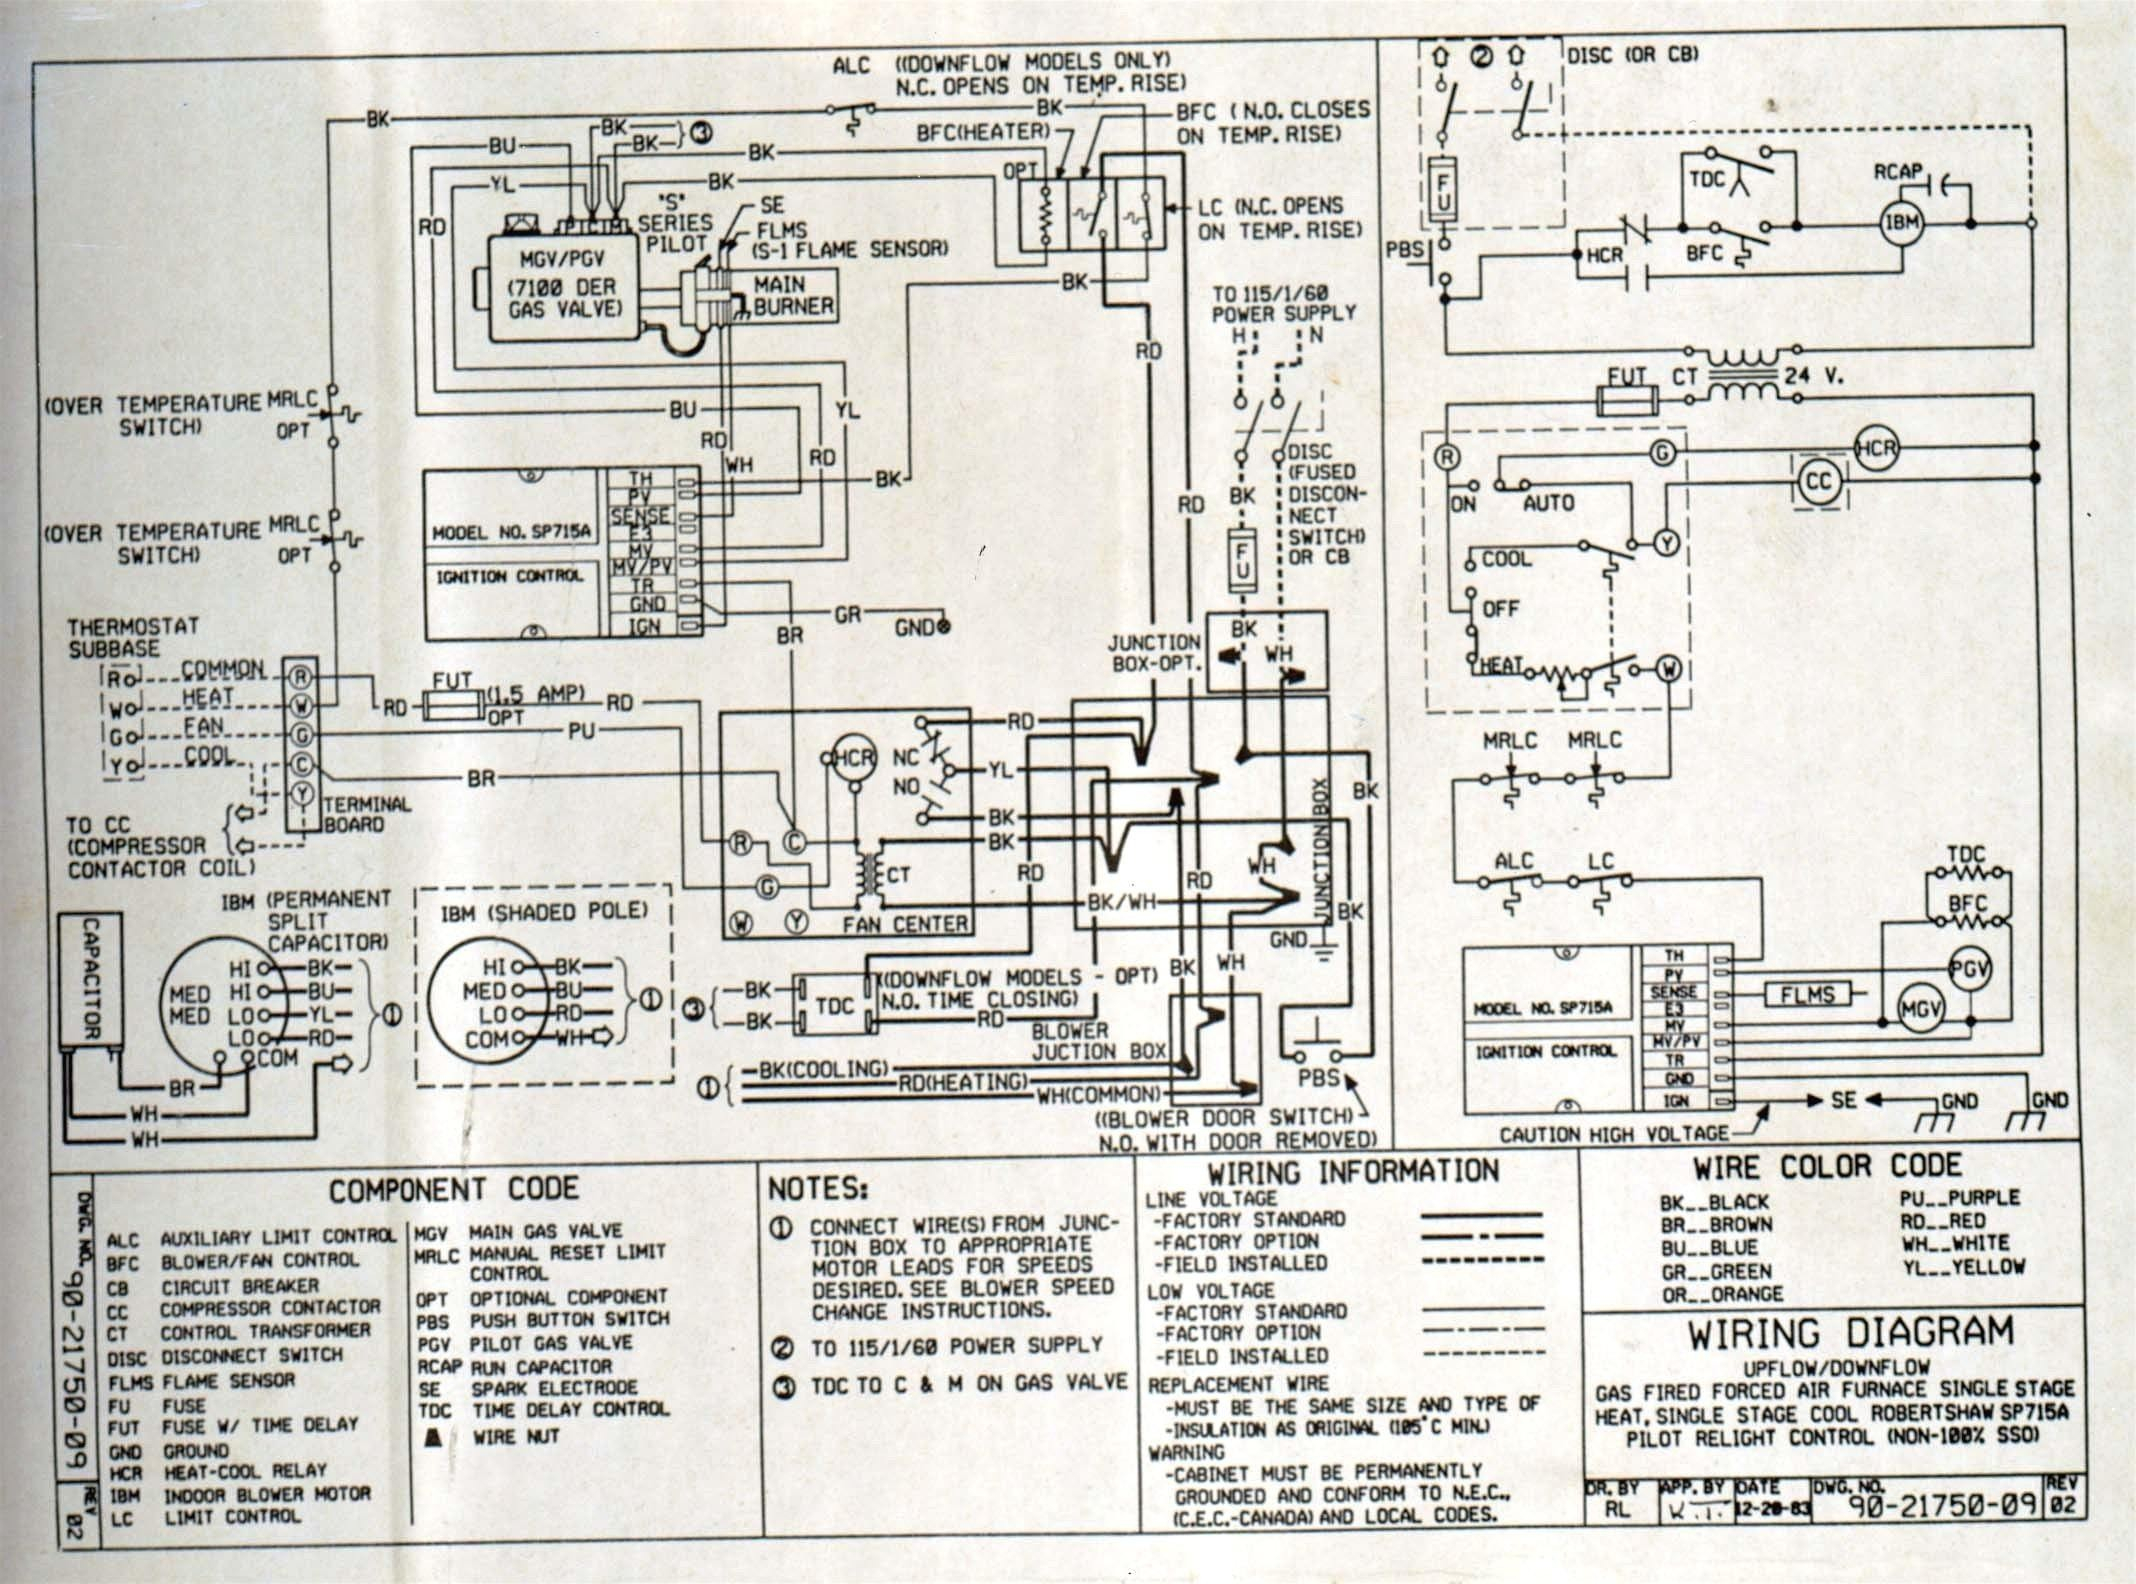 boilers wiring diagram and manuals 2000 s10 blazer rheem oil furnace download